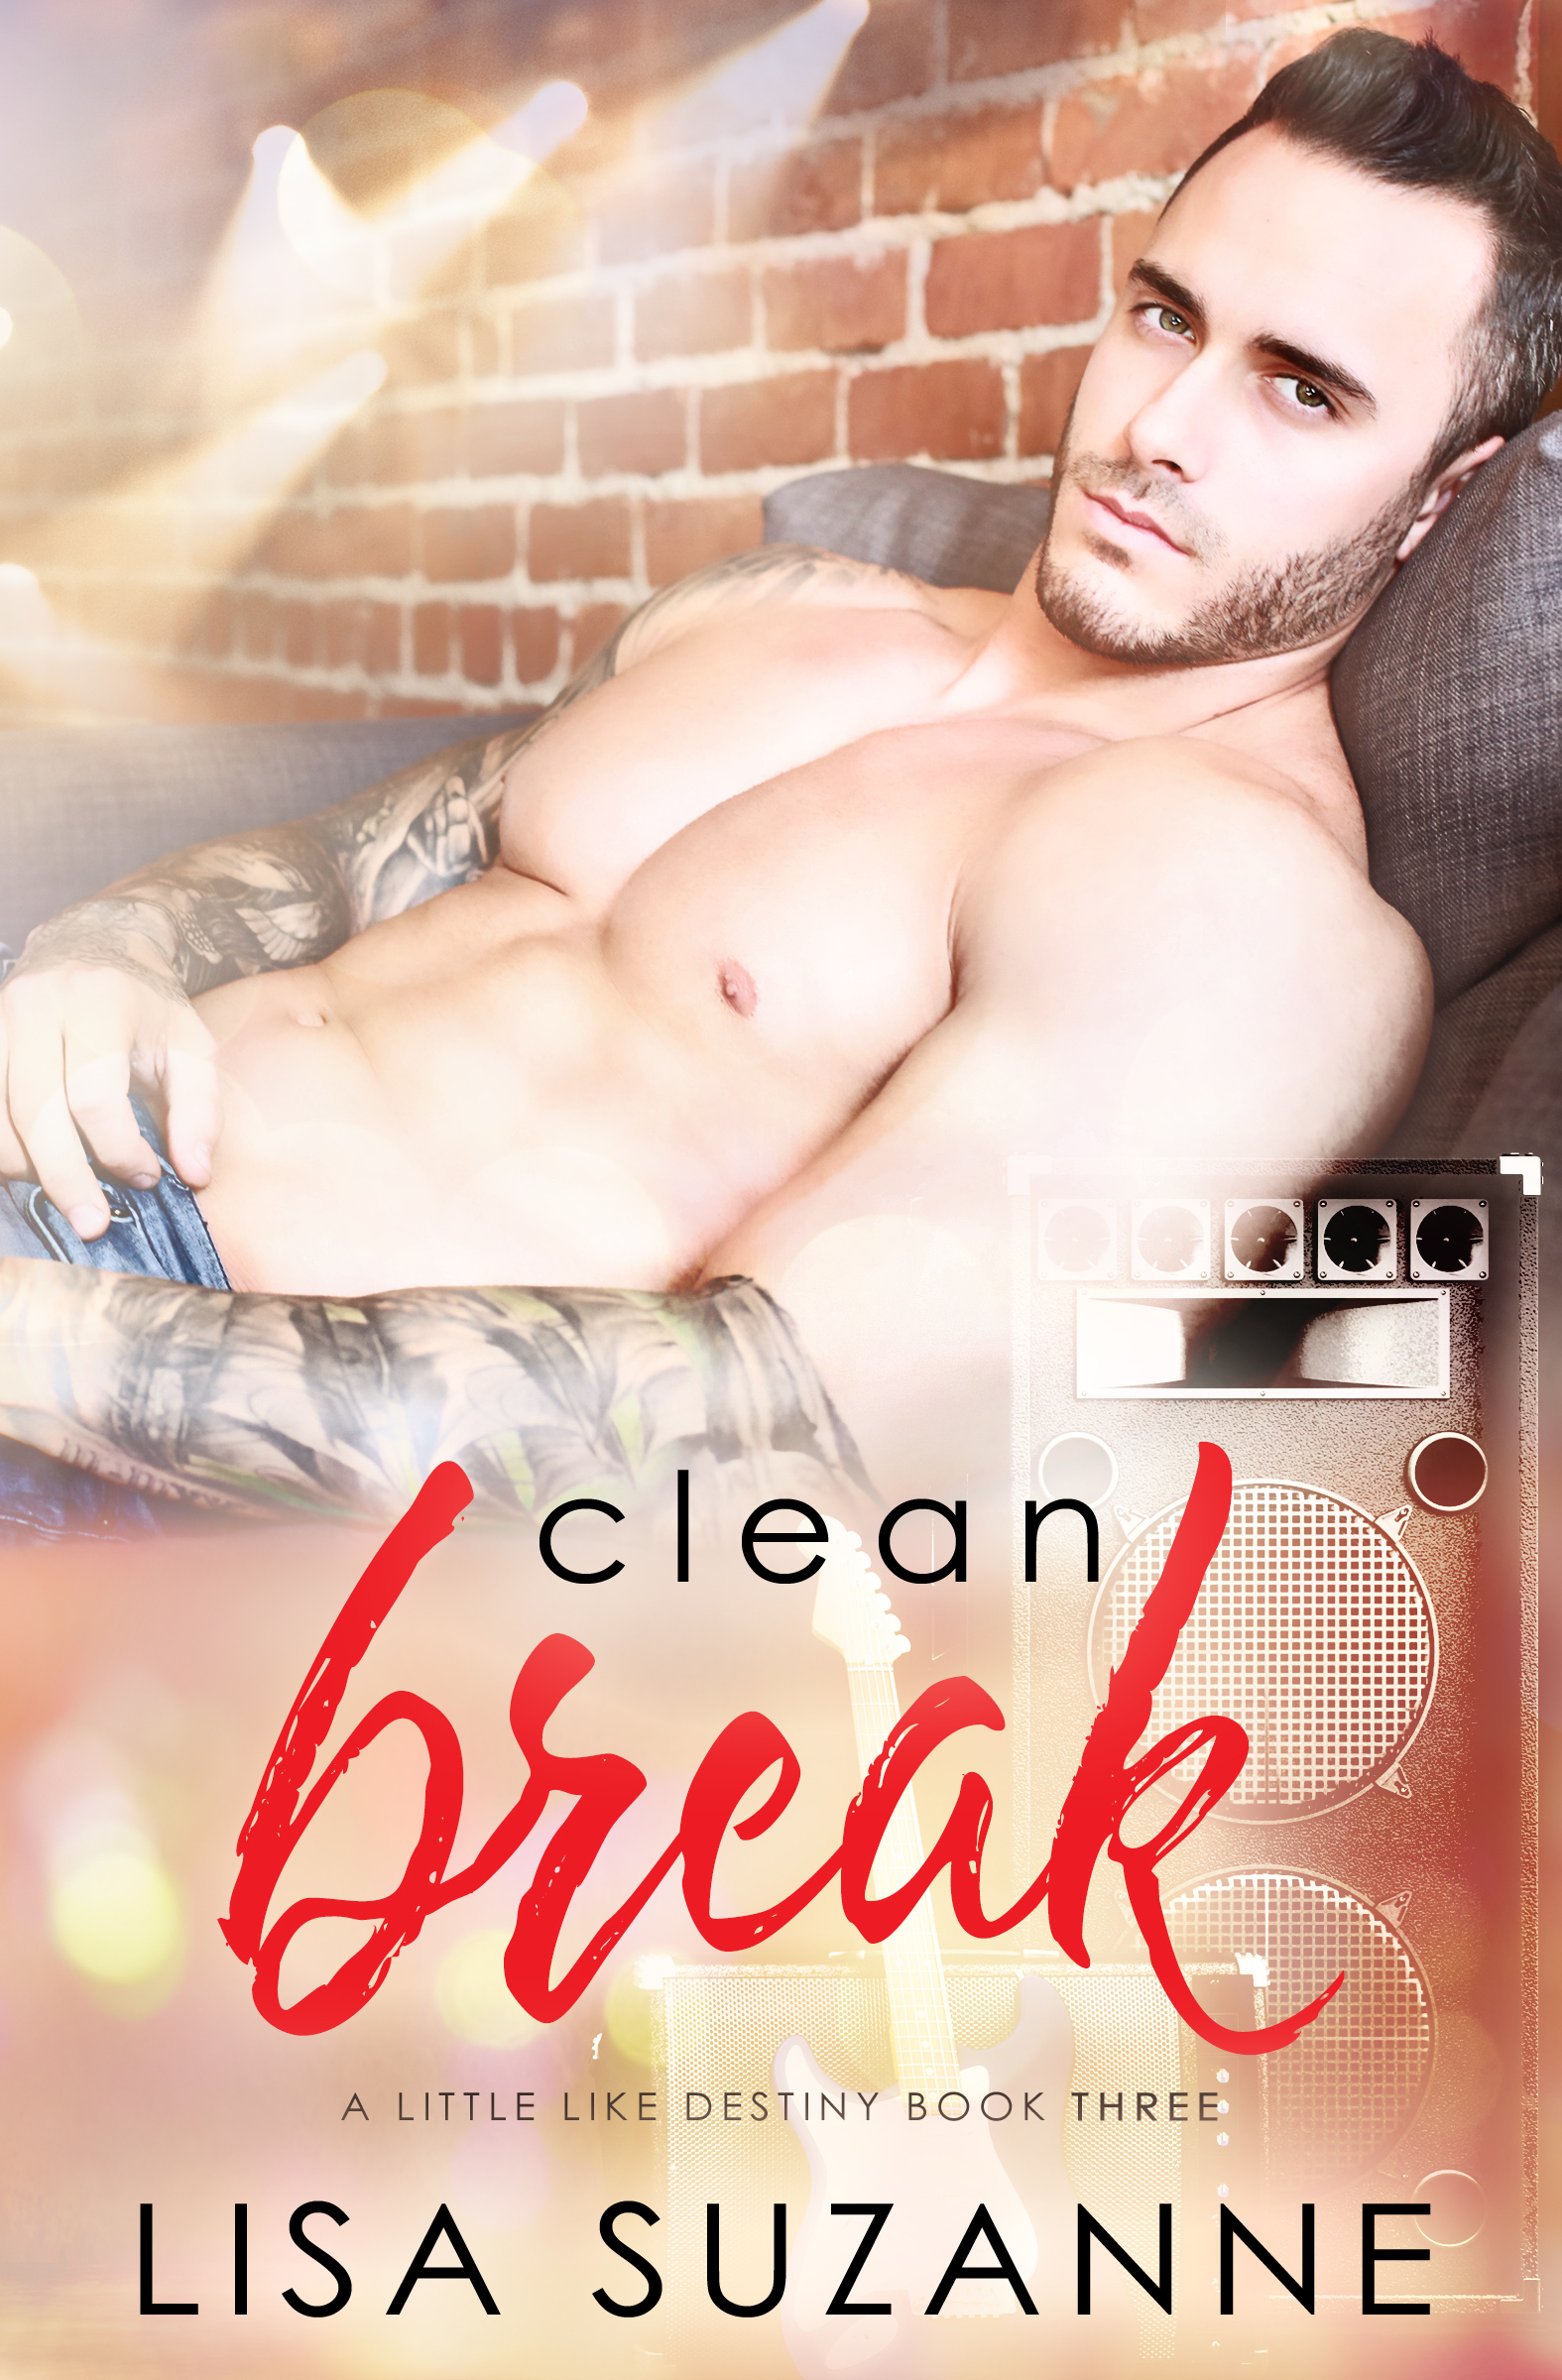 Clean Break Ebook Cover